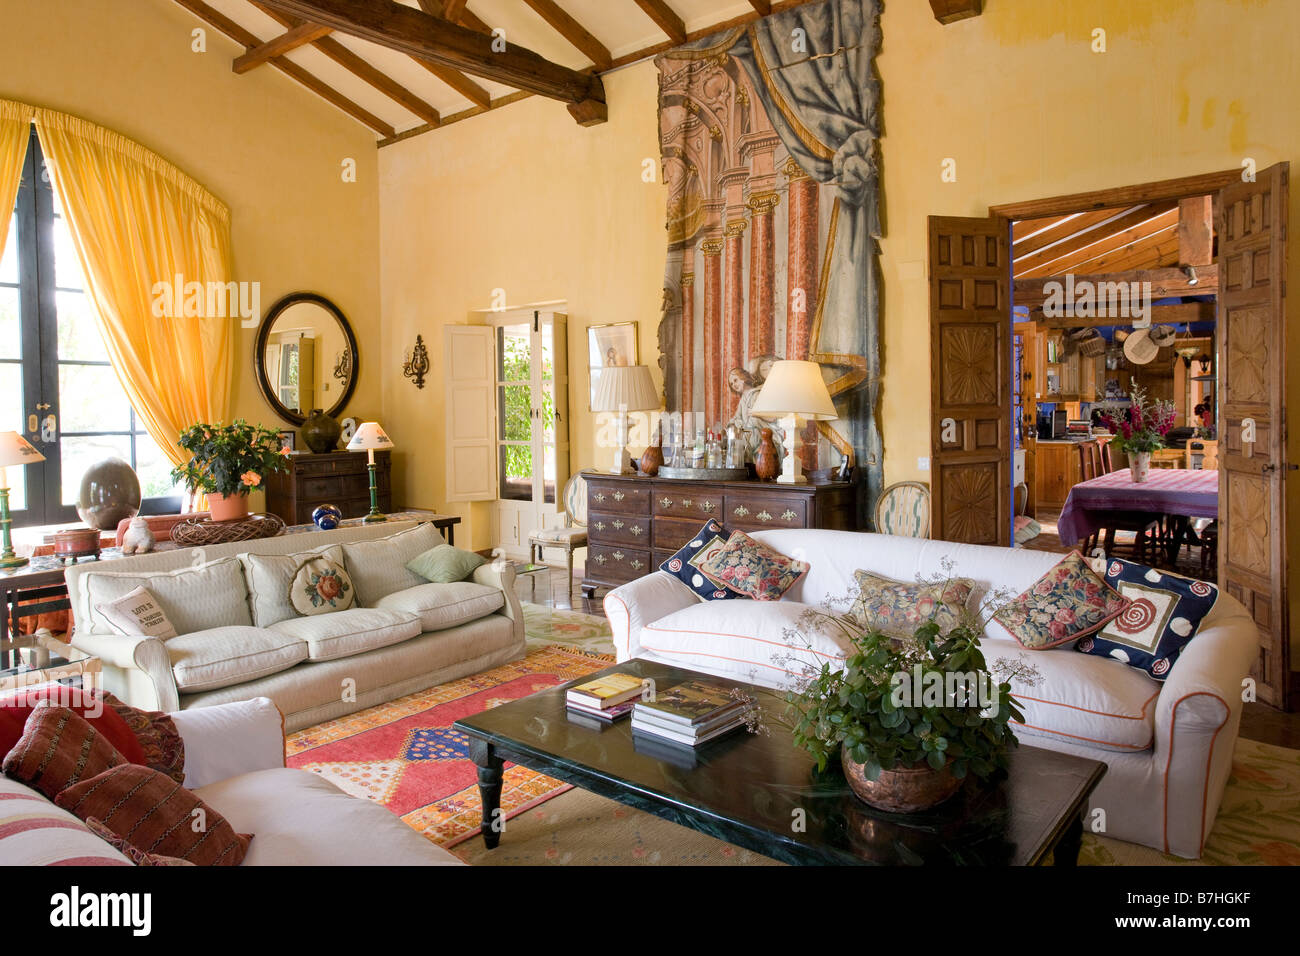 Large White Sofas In Yellow Spanish Living Room With Trompe L Oeil Curtain And Pillar Painted On Wall Beside Doorway To Kitchen